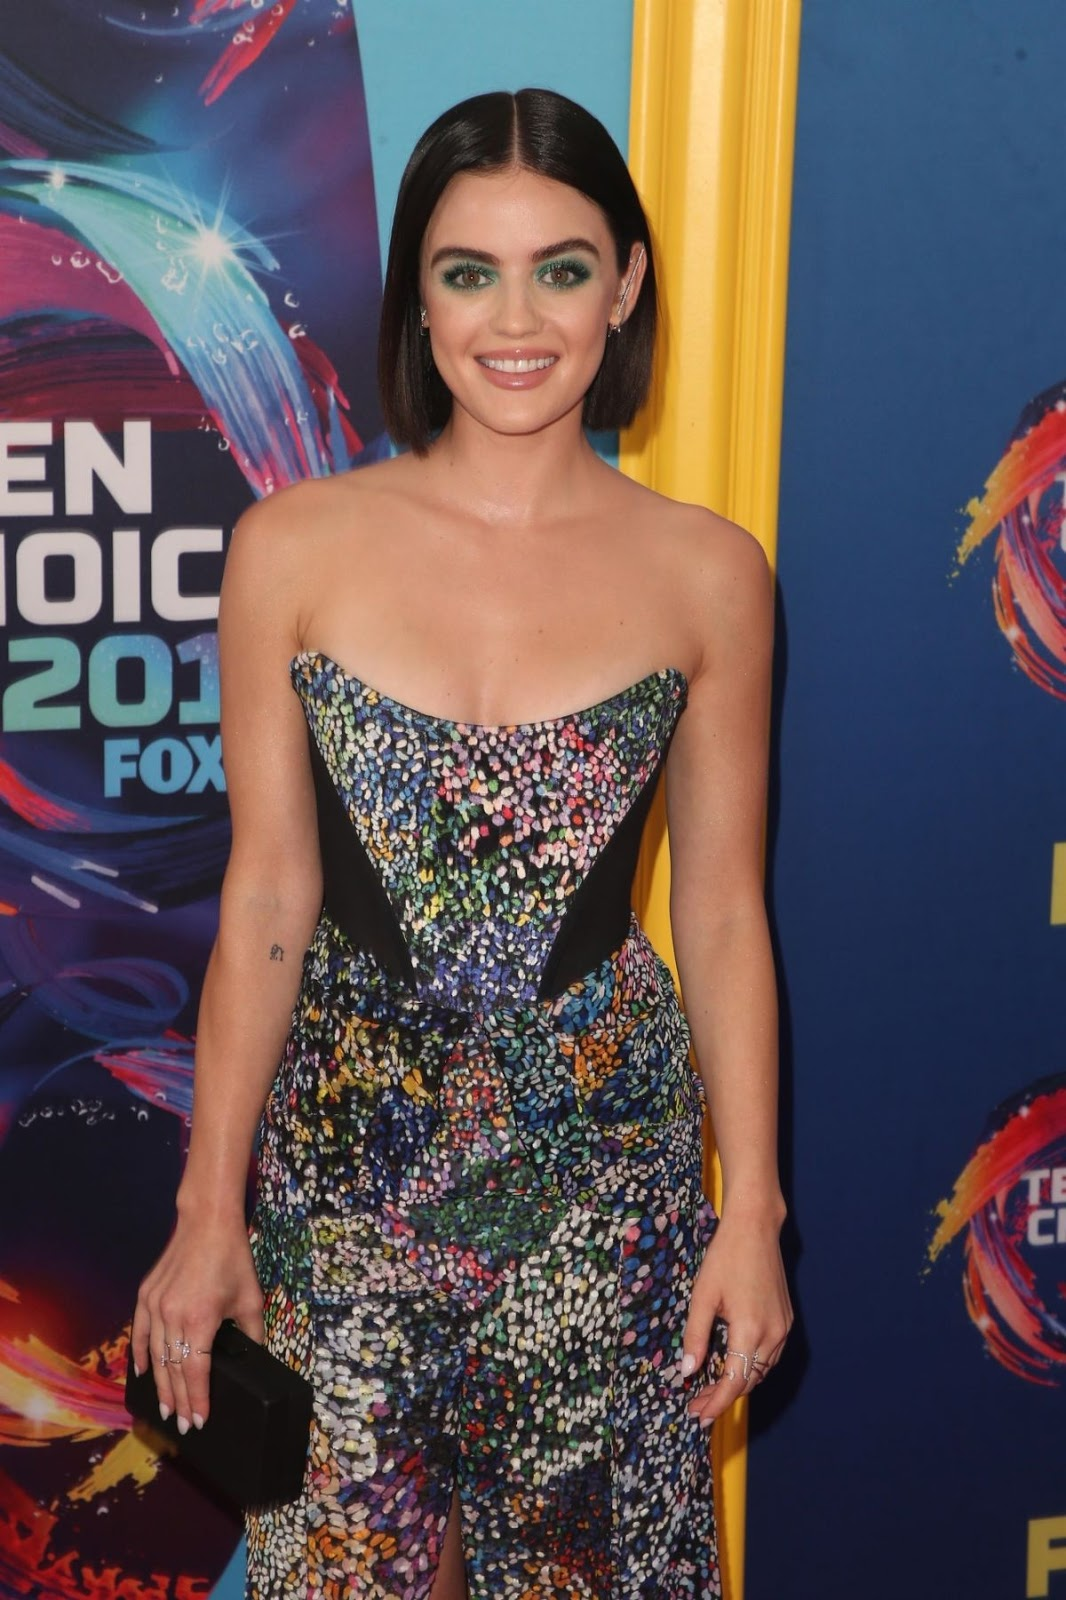 LUCY HALE at 2018 Teen Choice Awards in Beverly Hills